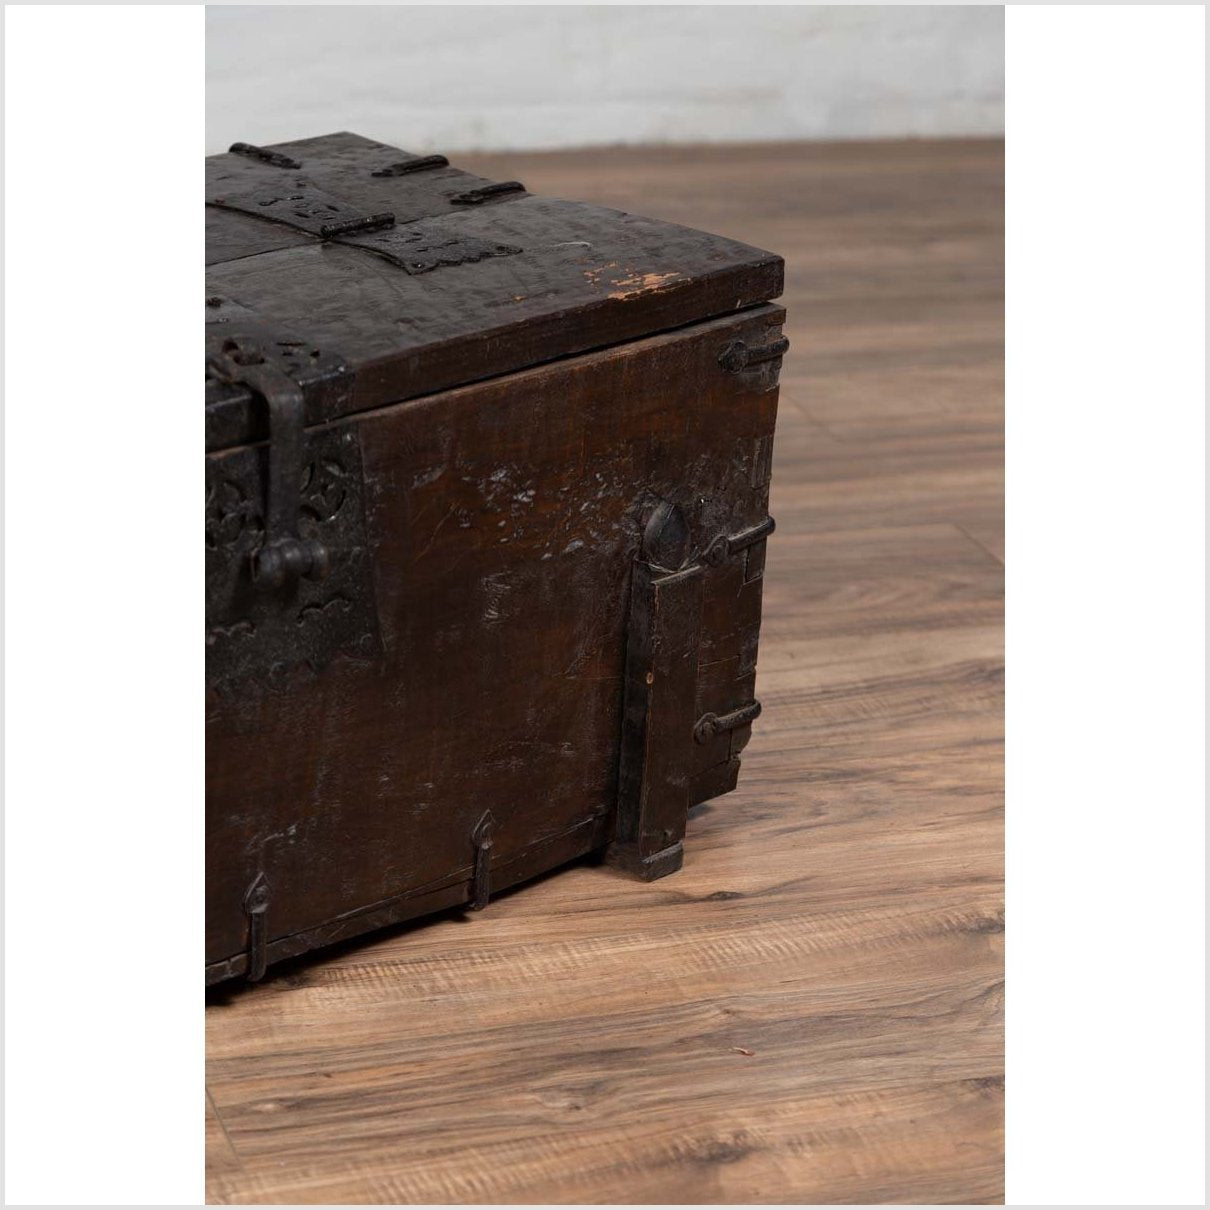 Small Antique Rustic Korean Wooden Trunk with Metal Hardware and Brown Patina